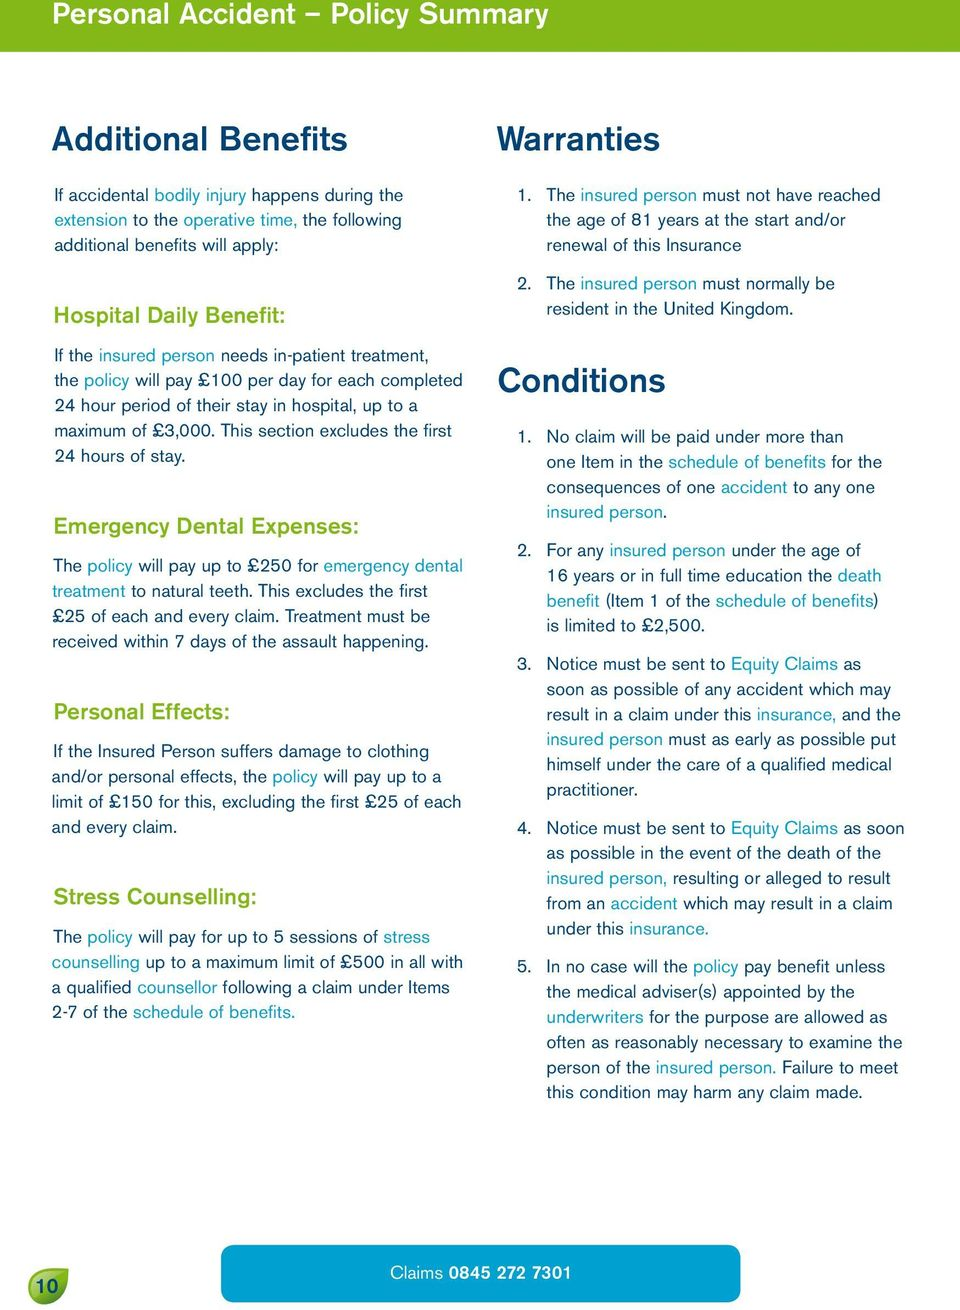 Emergency Dental Expenses: The policy will pay up to 250 for emergency dental treatment to natural teeth. This excludes the first 25 of each and every claim.